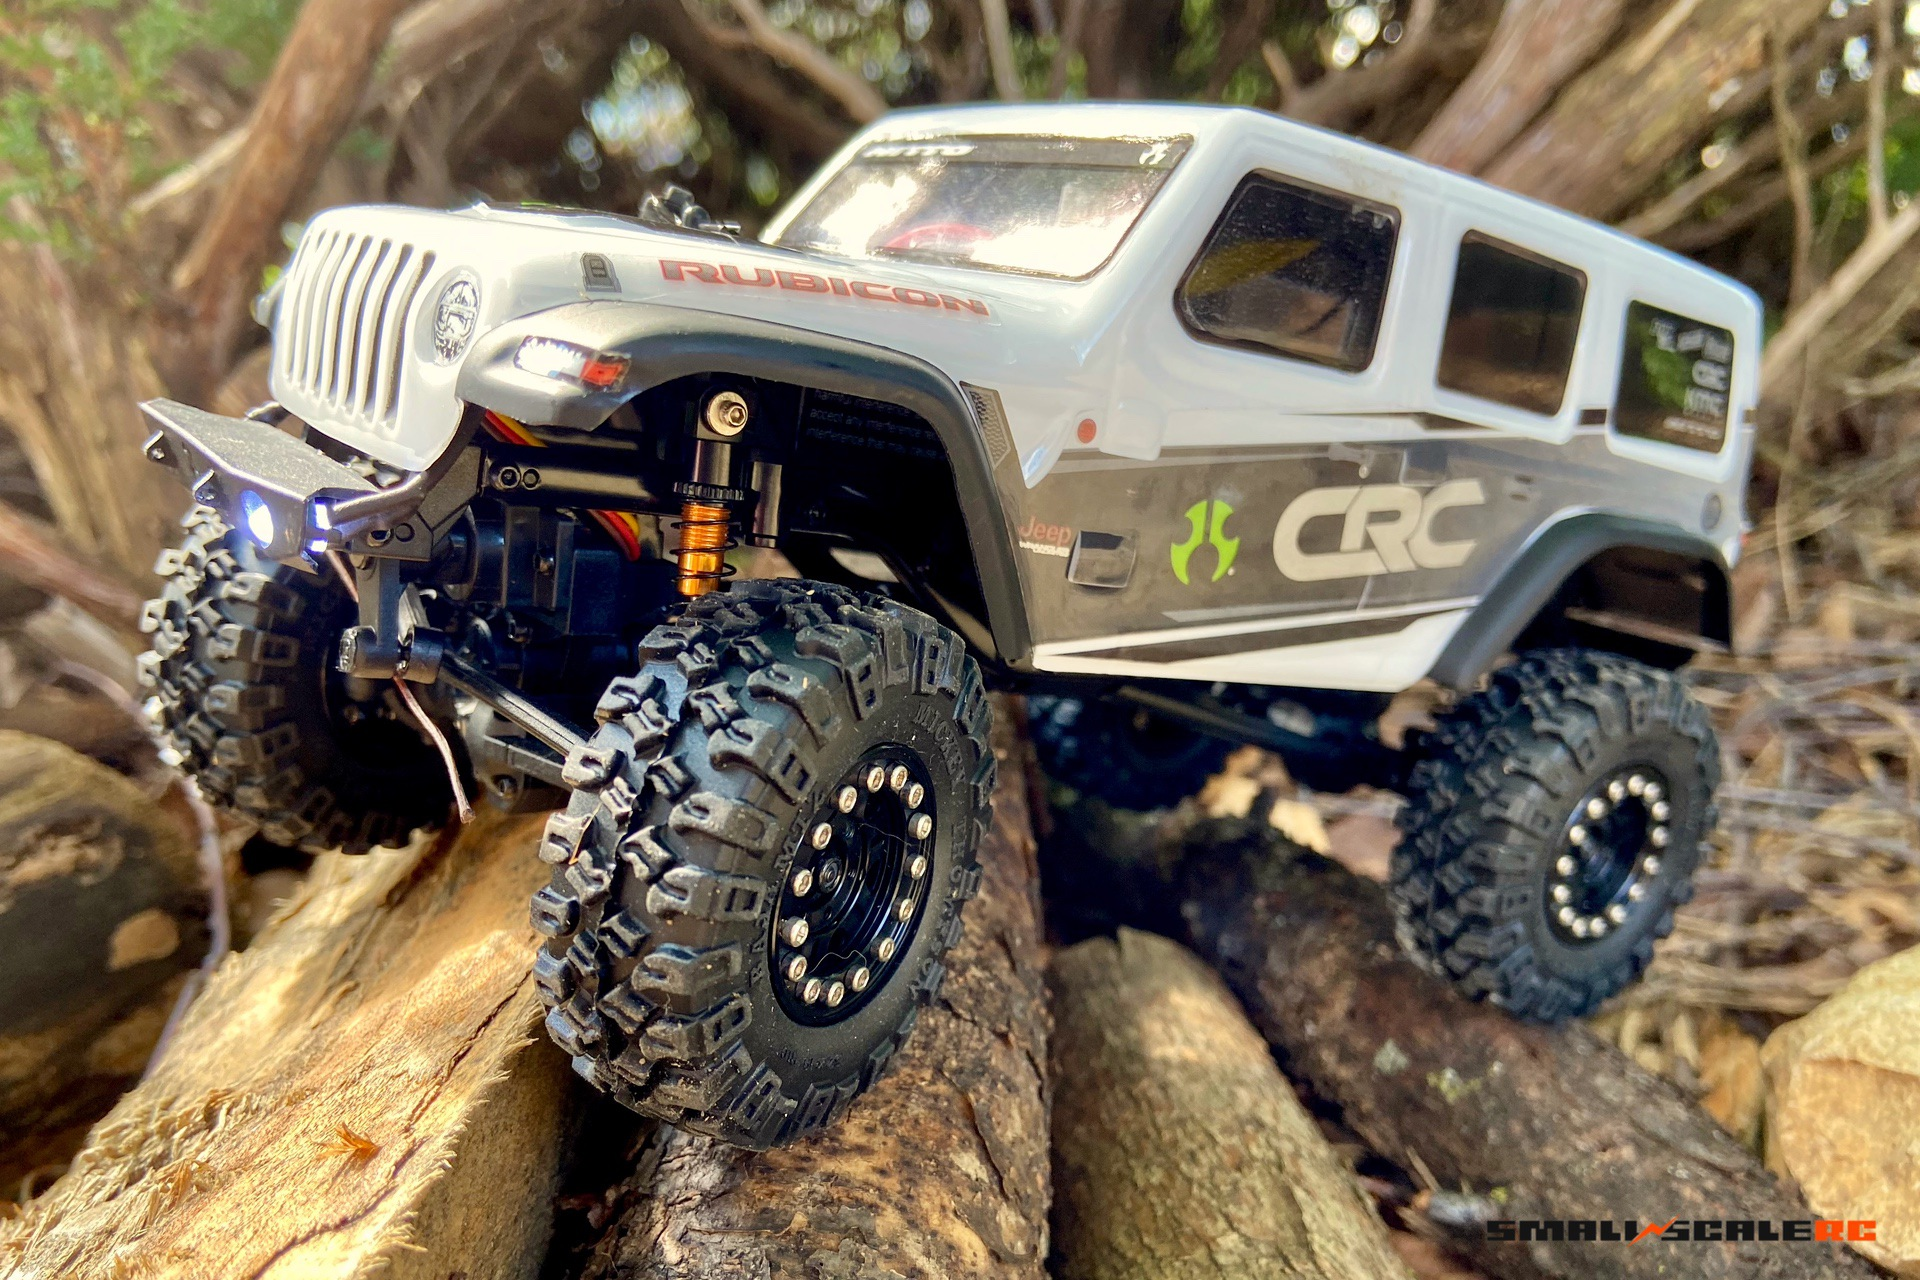 Review: Injora 32mm Aluminum-bodied Shocks for the Axial SCX24